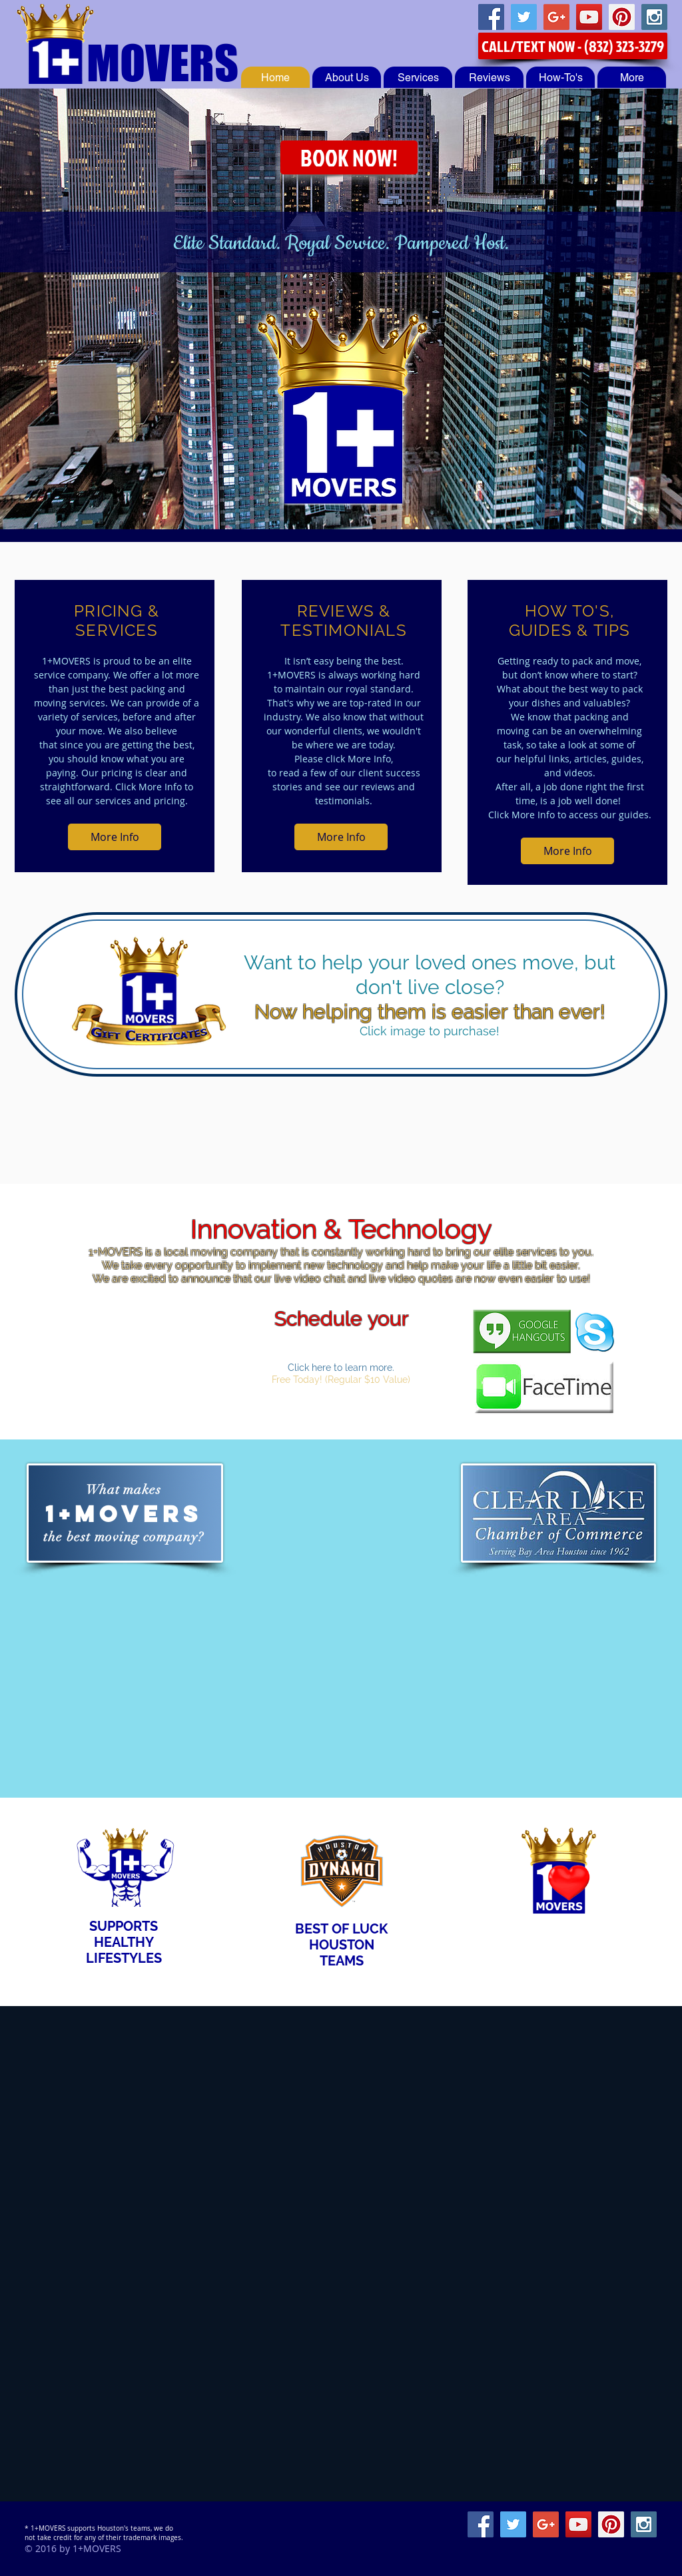 1+ Movers Competitors, Revenue and Employees - Owler Company